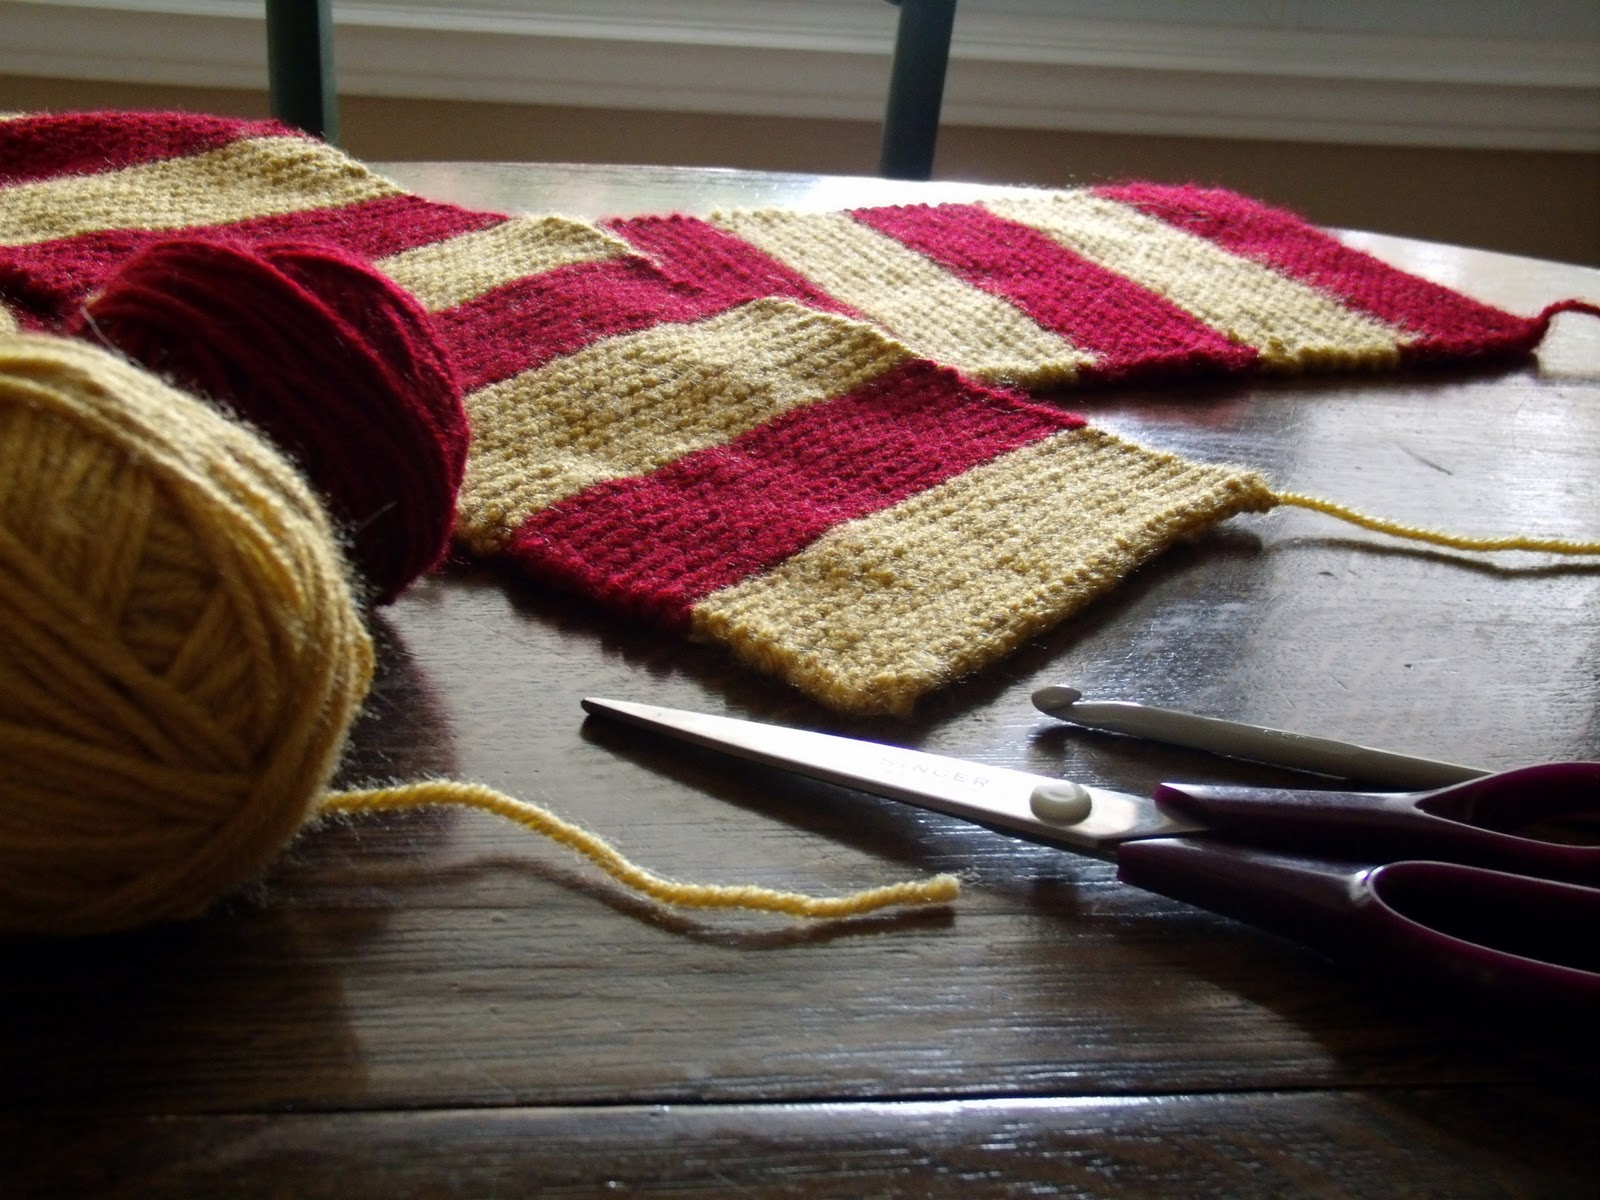 Making Stuff: Harry Potter Scarf Knitting Pattern | Frugal Family Times